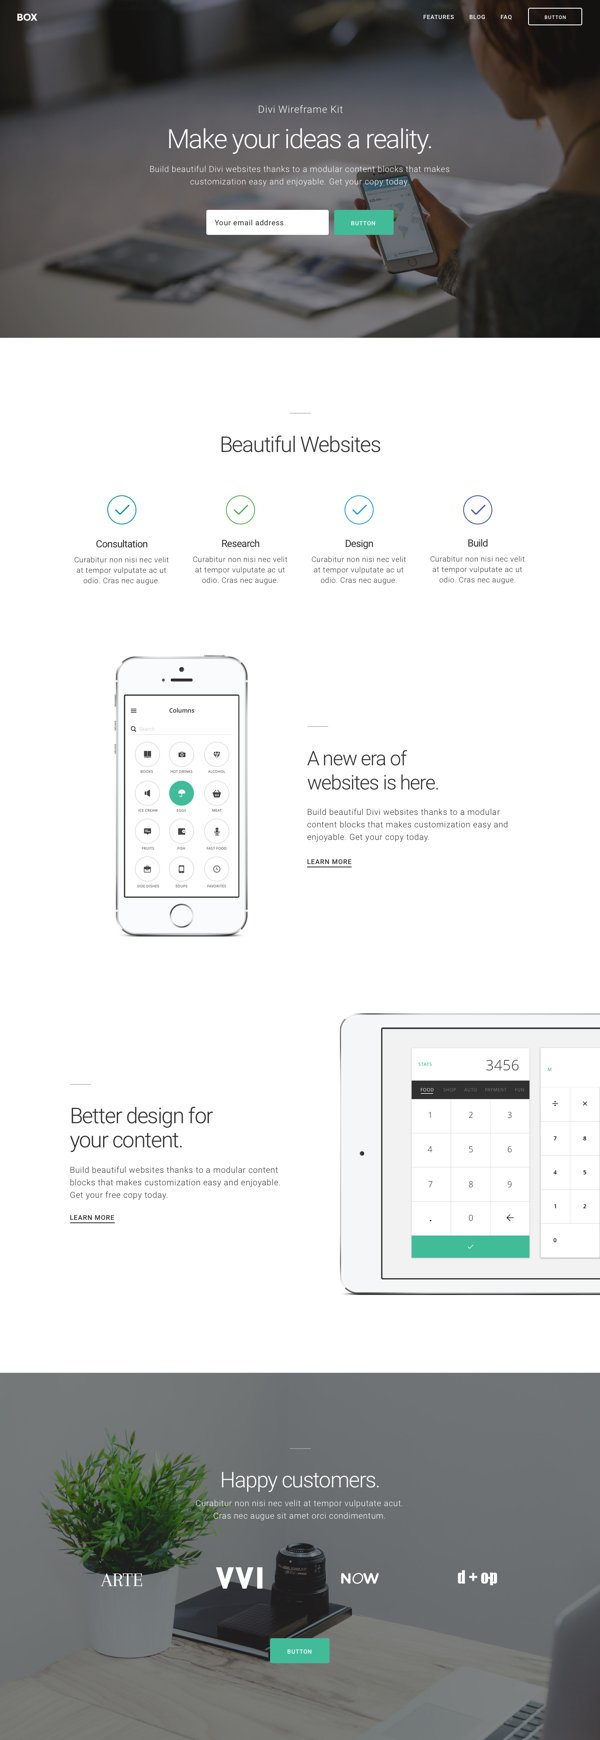 divi-100-landing-pages-layout-pack-built-w-expanding-wireframe-kit-01